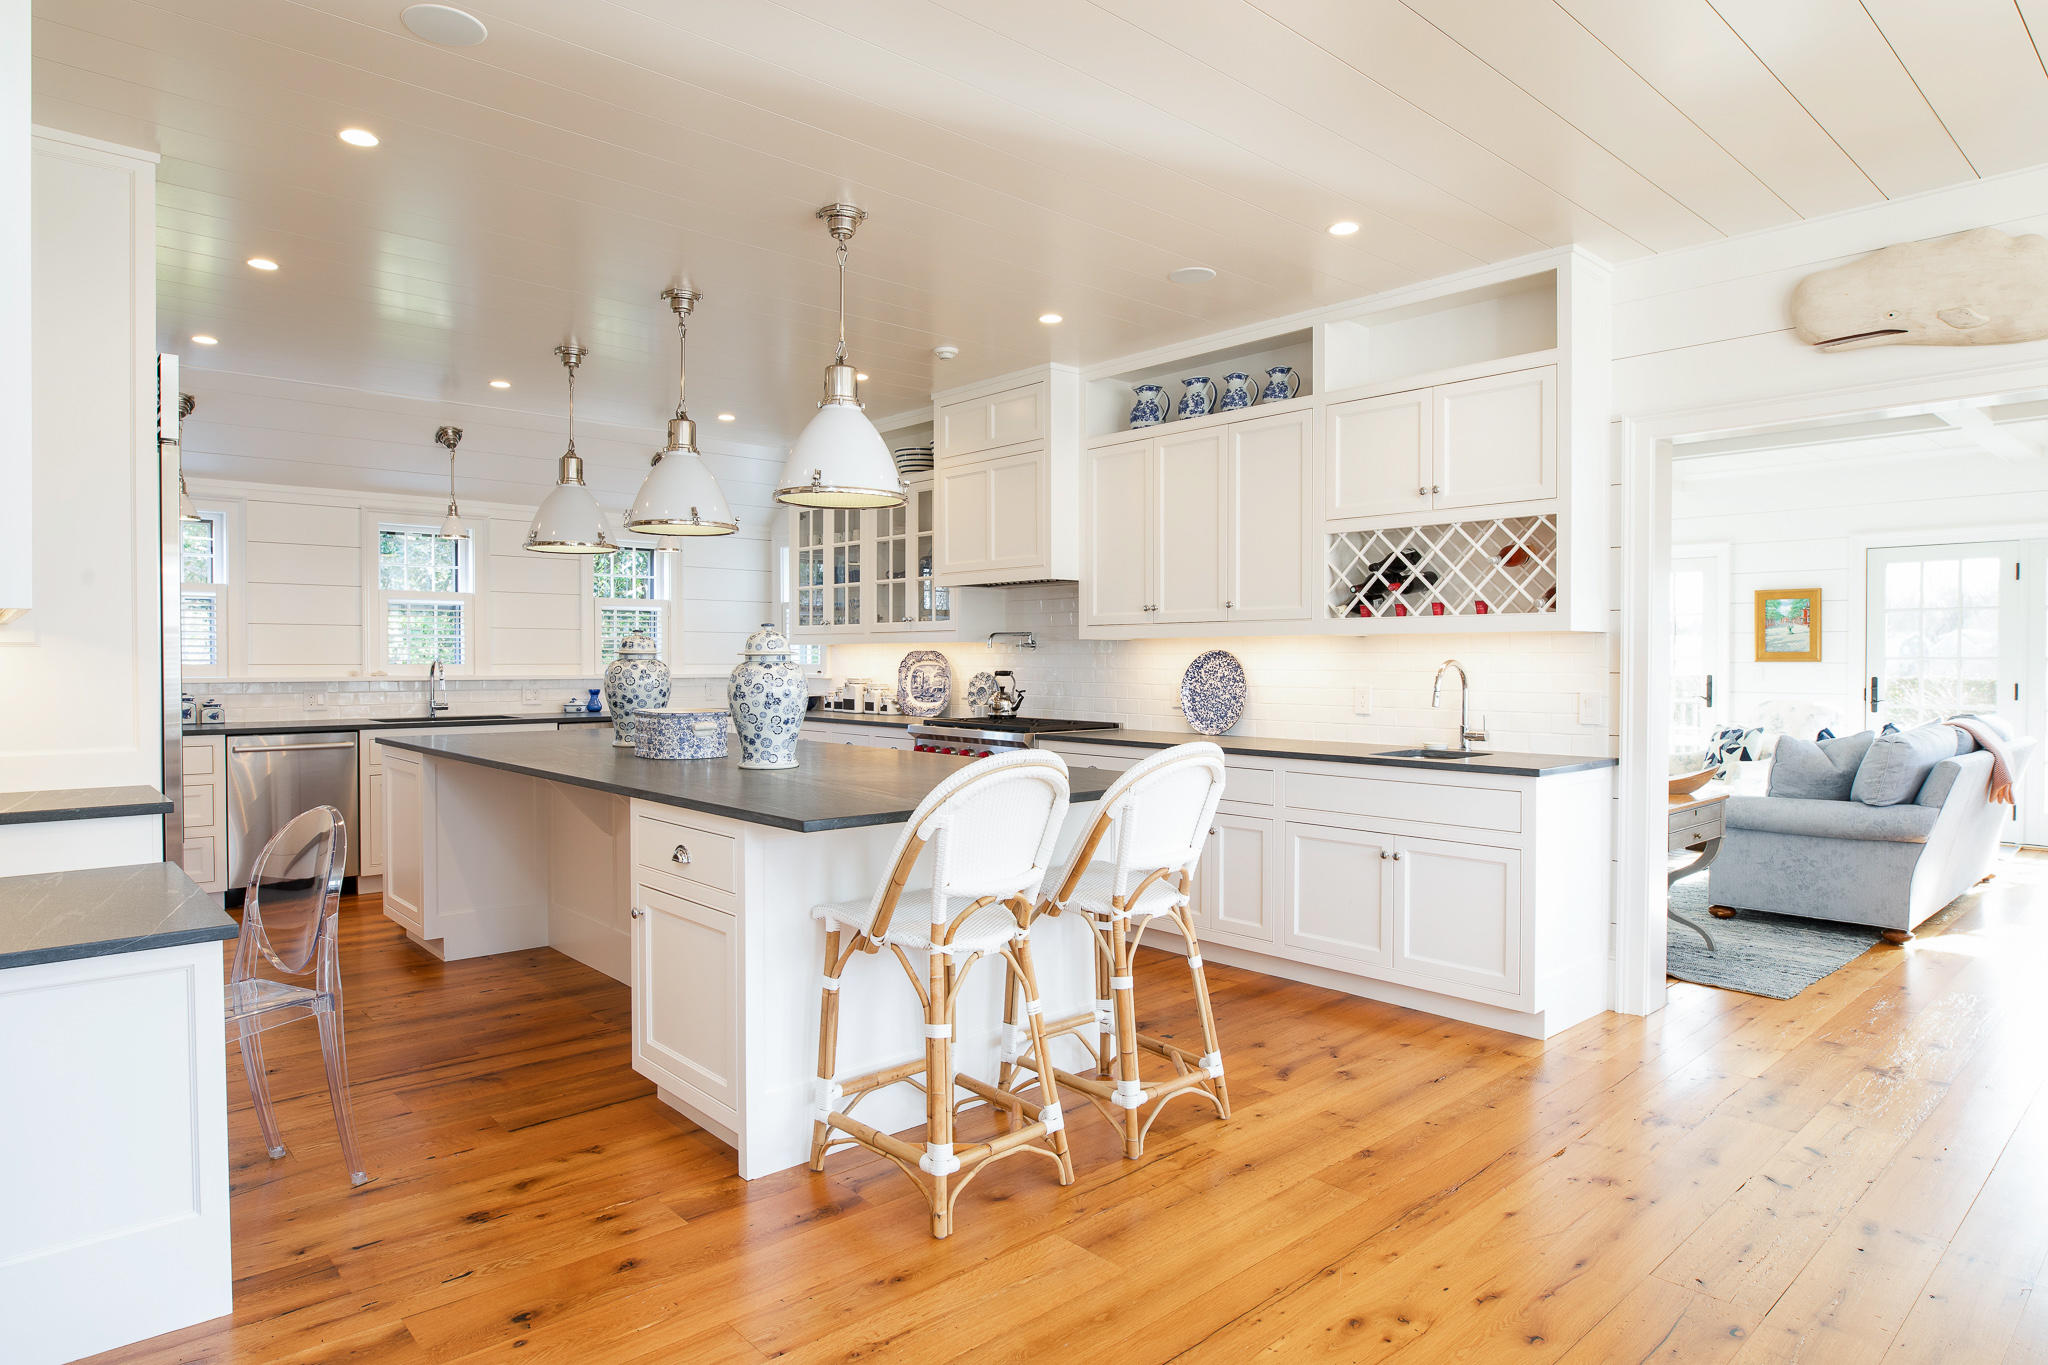 36 West Chester Street, Nantucket, Massachusetts, 02554, 5 Bedrooms Bedrooms, ,5 BathroomsBathrooms,Residential,For Sale,36 West Chester Street,22002236